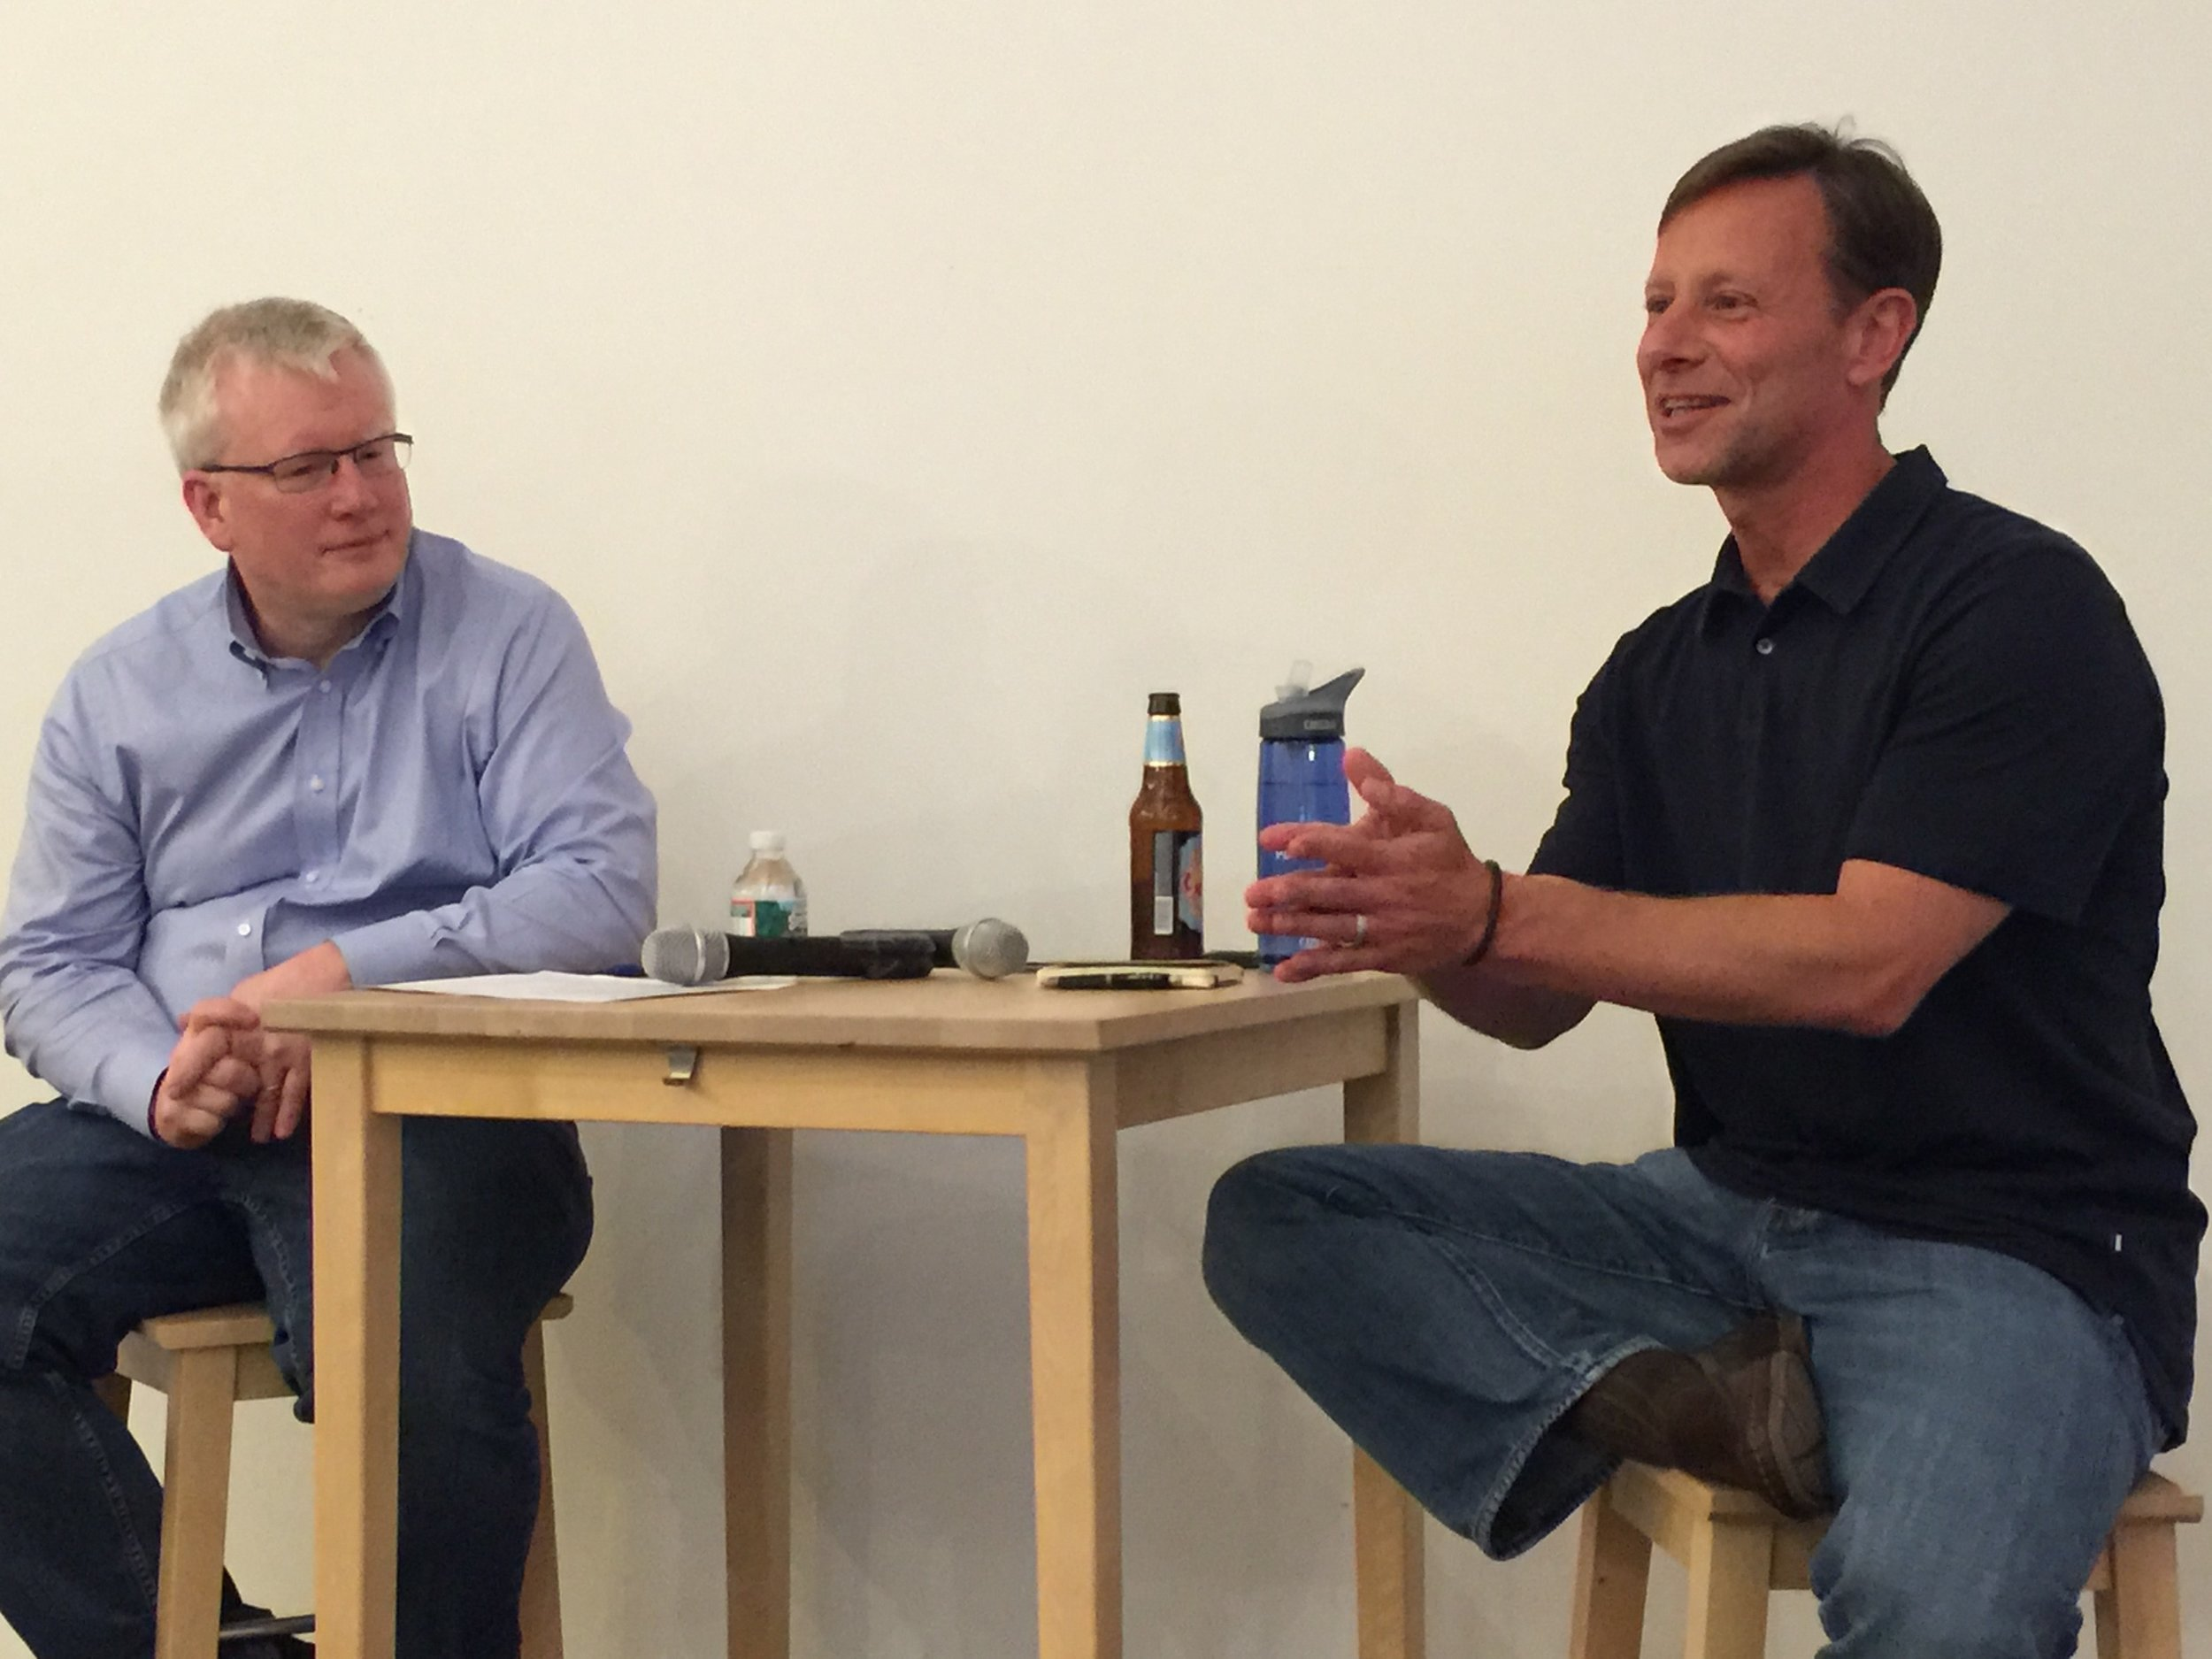 Startup Grind Princeton - A fireside chat with an entrepreneur each month at Tigerlabs. Here with Pete Muller, CEO of PDT.